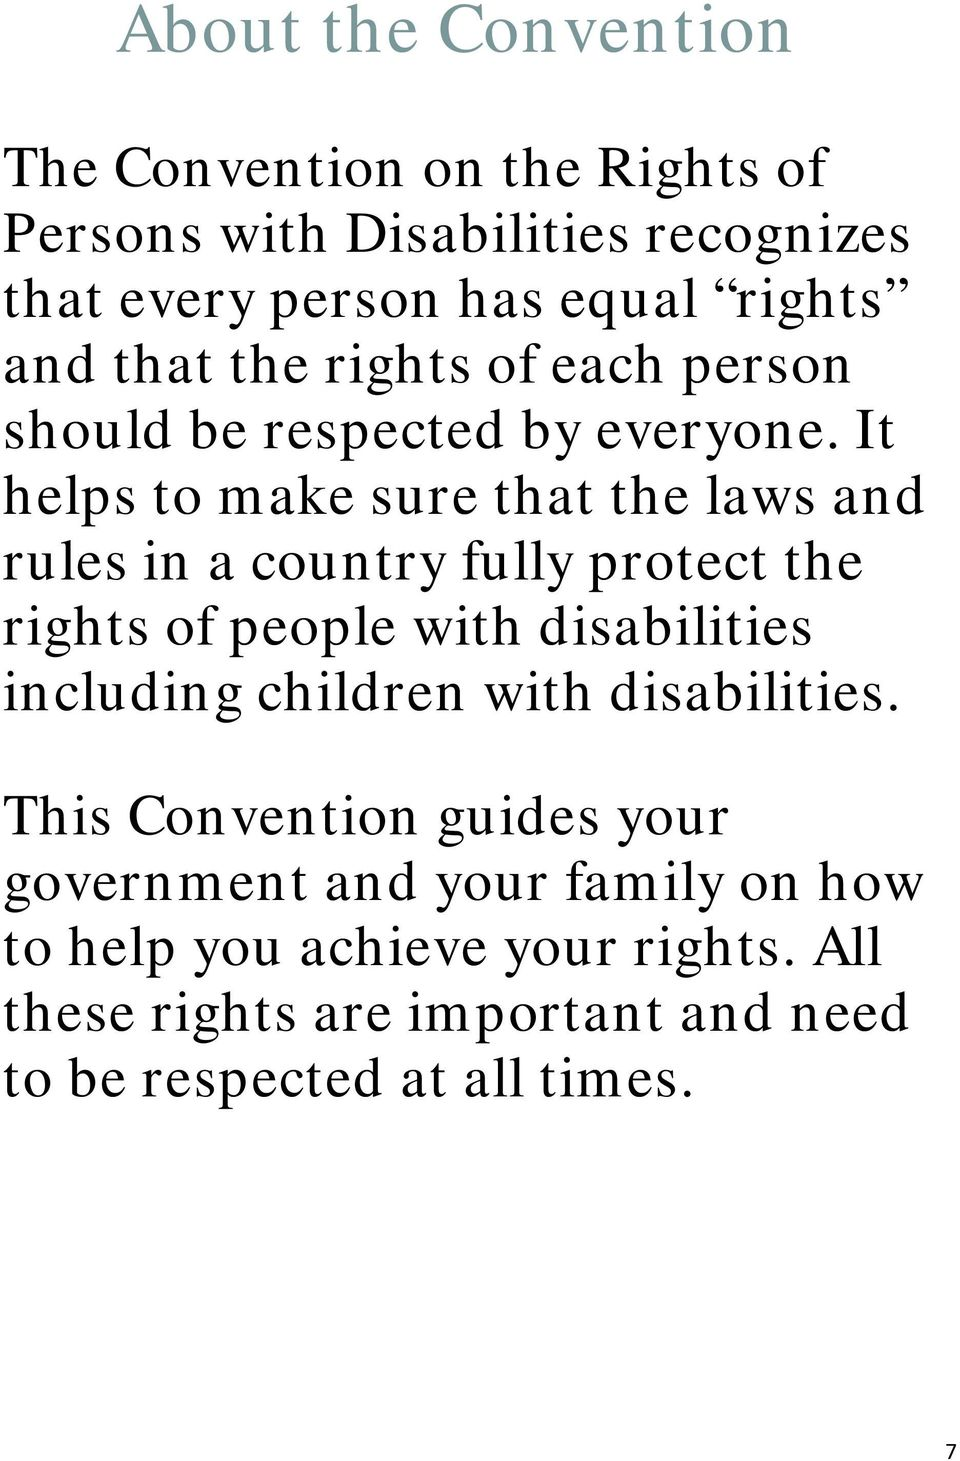 It helps to make sure that the laws and rules in a country fully protect the rights of people with disabilities including